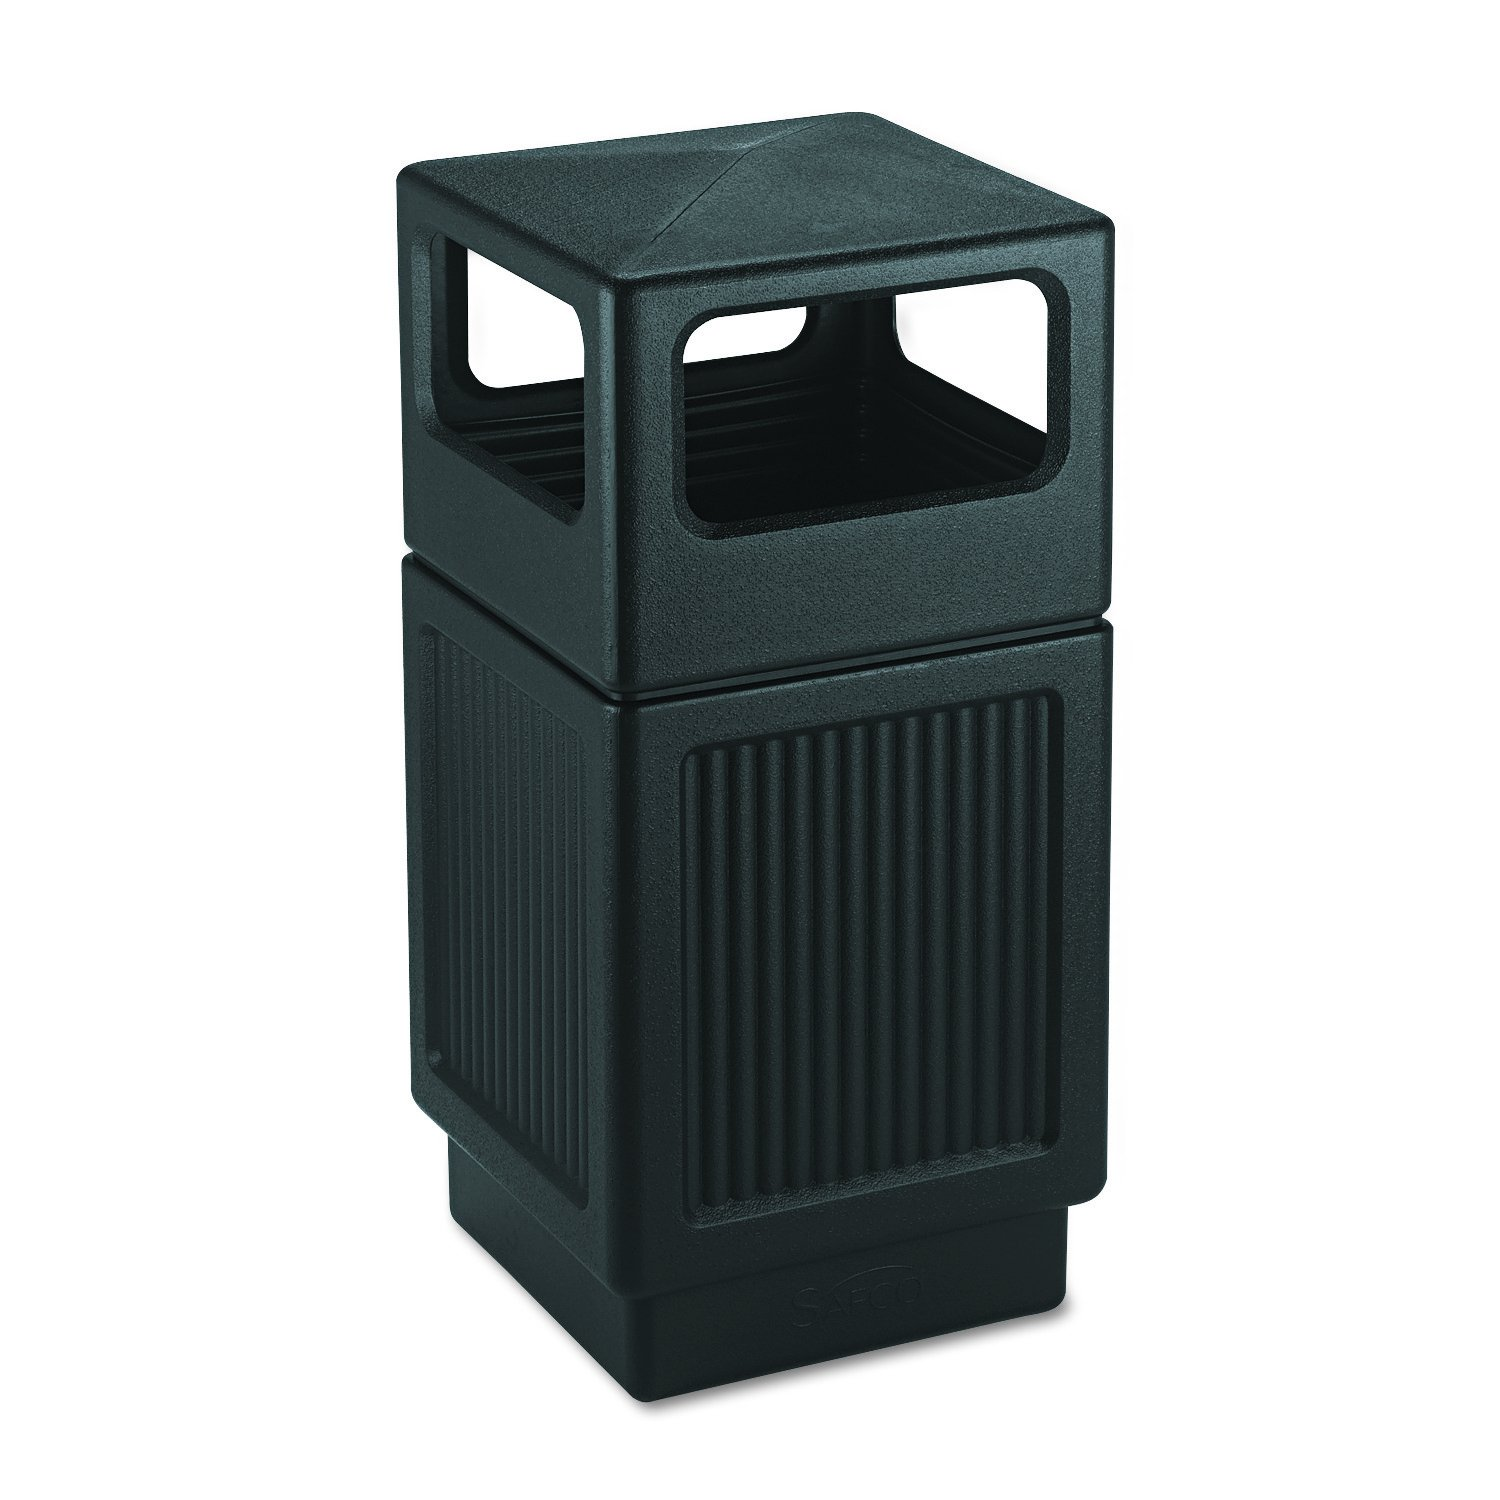 Safco Products Canmeleon Outdoor/Indoor Recessed Panel Trash Can 9476BL, Black, Decorative Fluted Panels, 38-Gallon Capacity by Safco Products